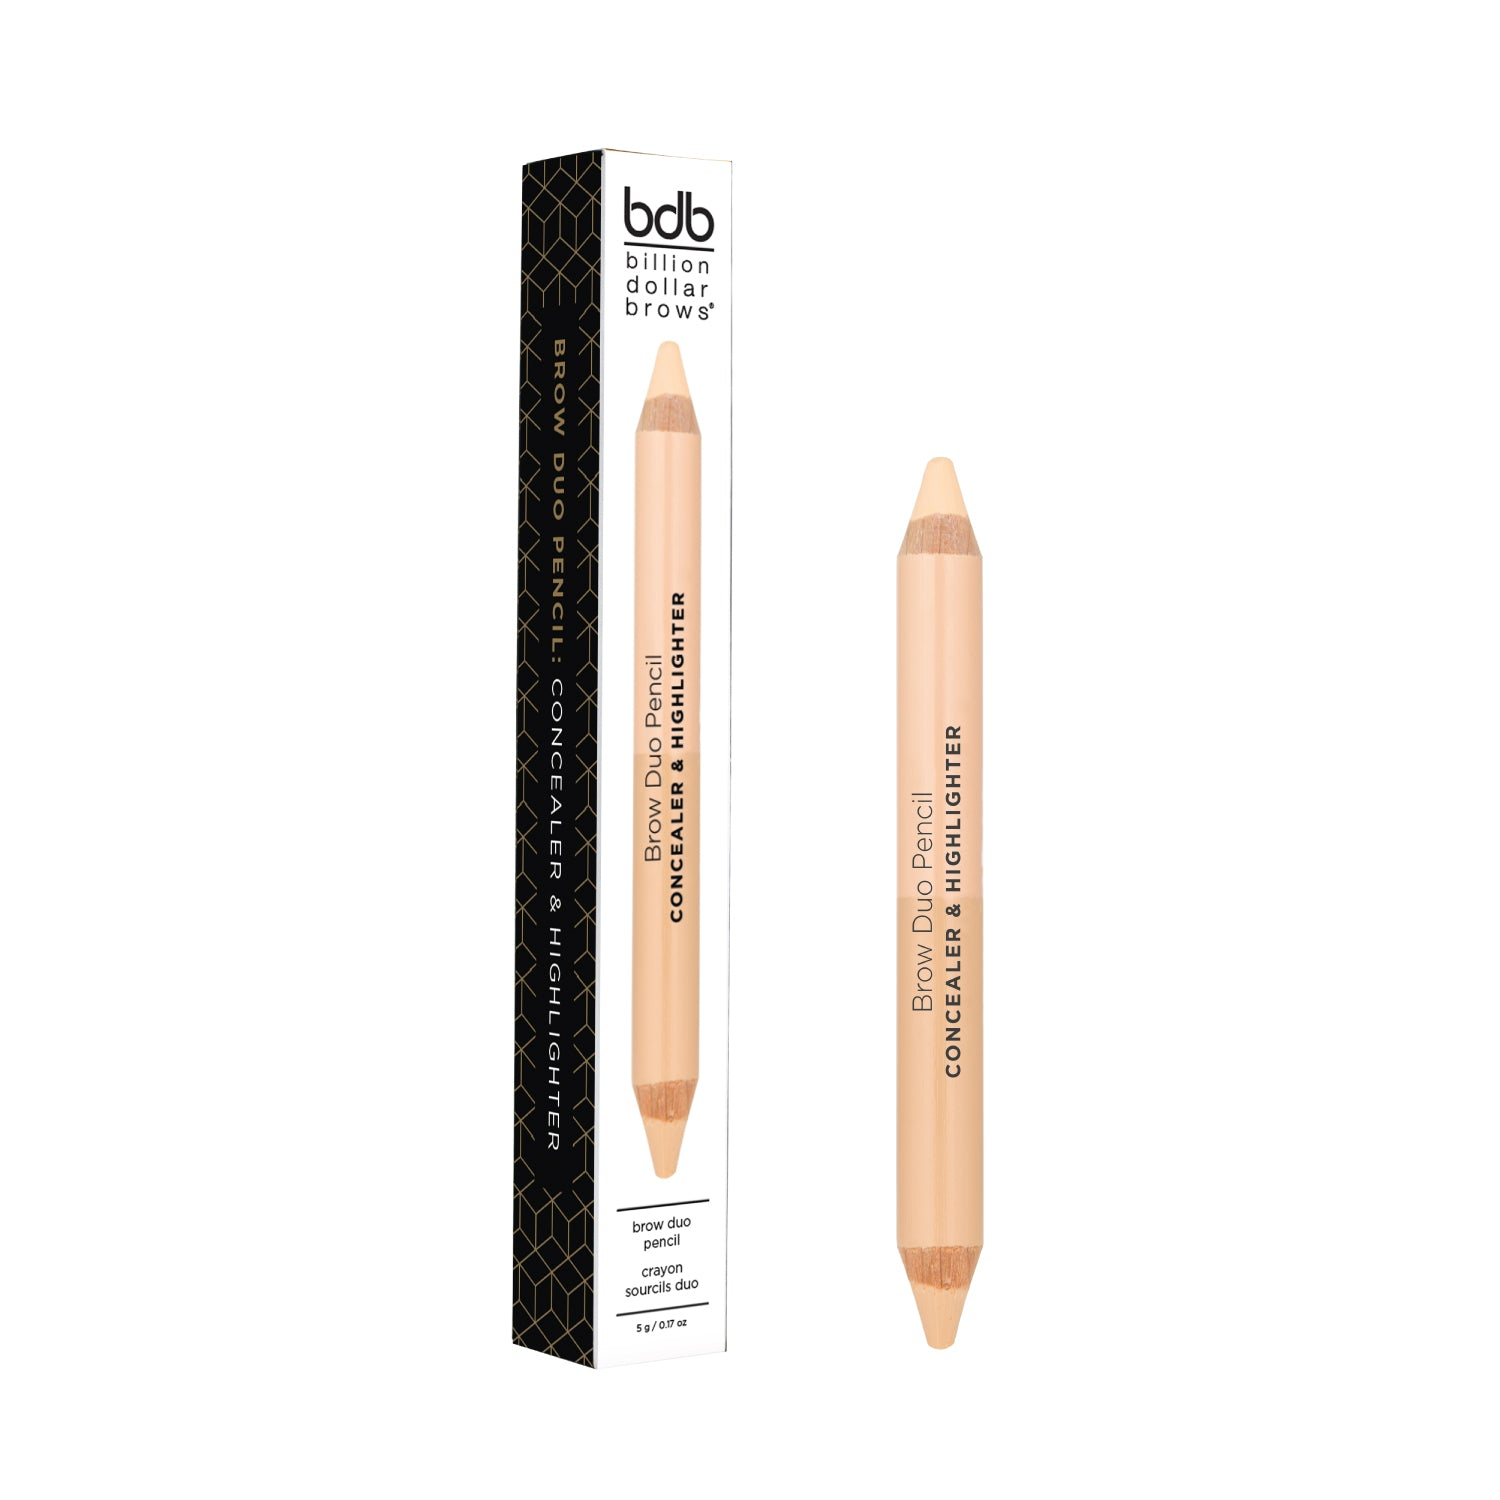 BILLION DOLLAR BROWS - BROW DUO PENCIL